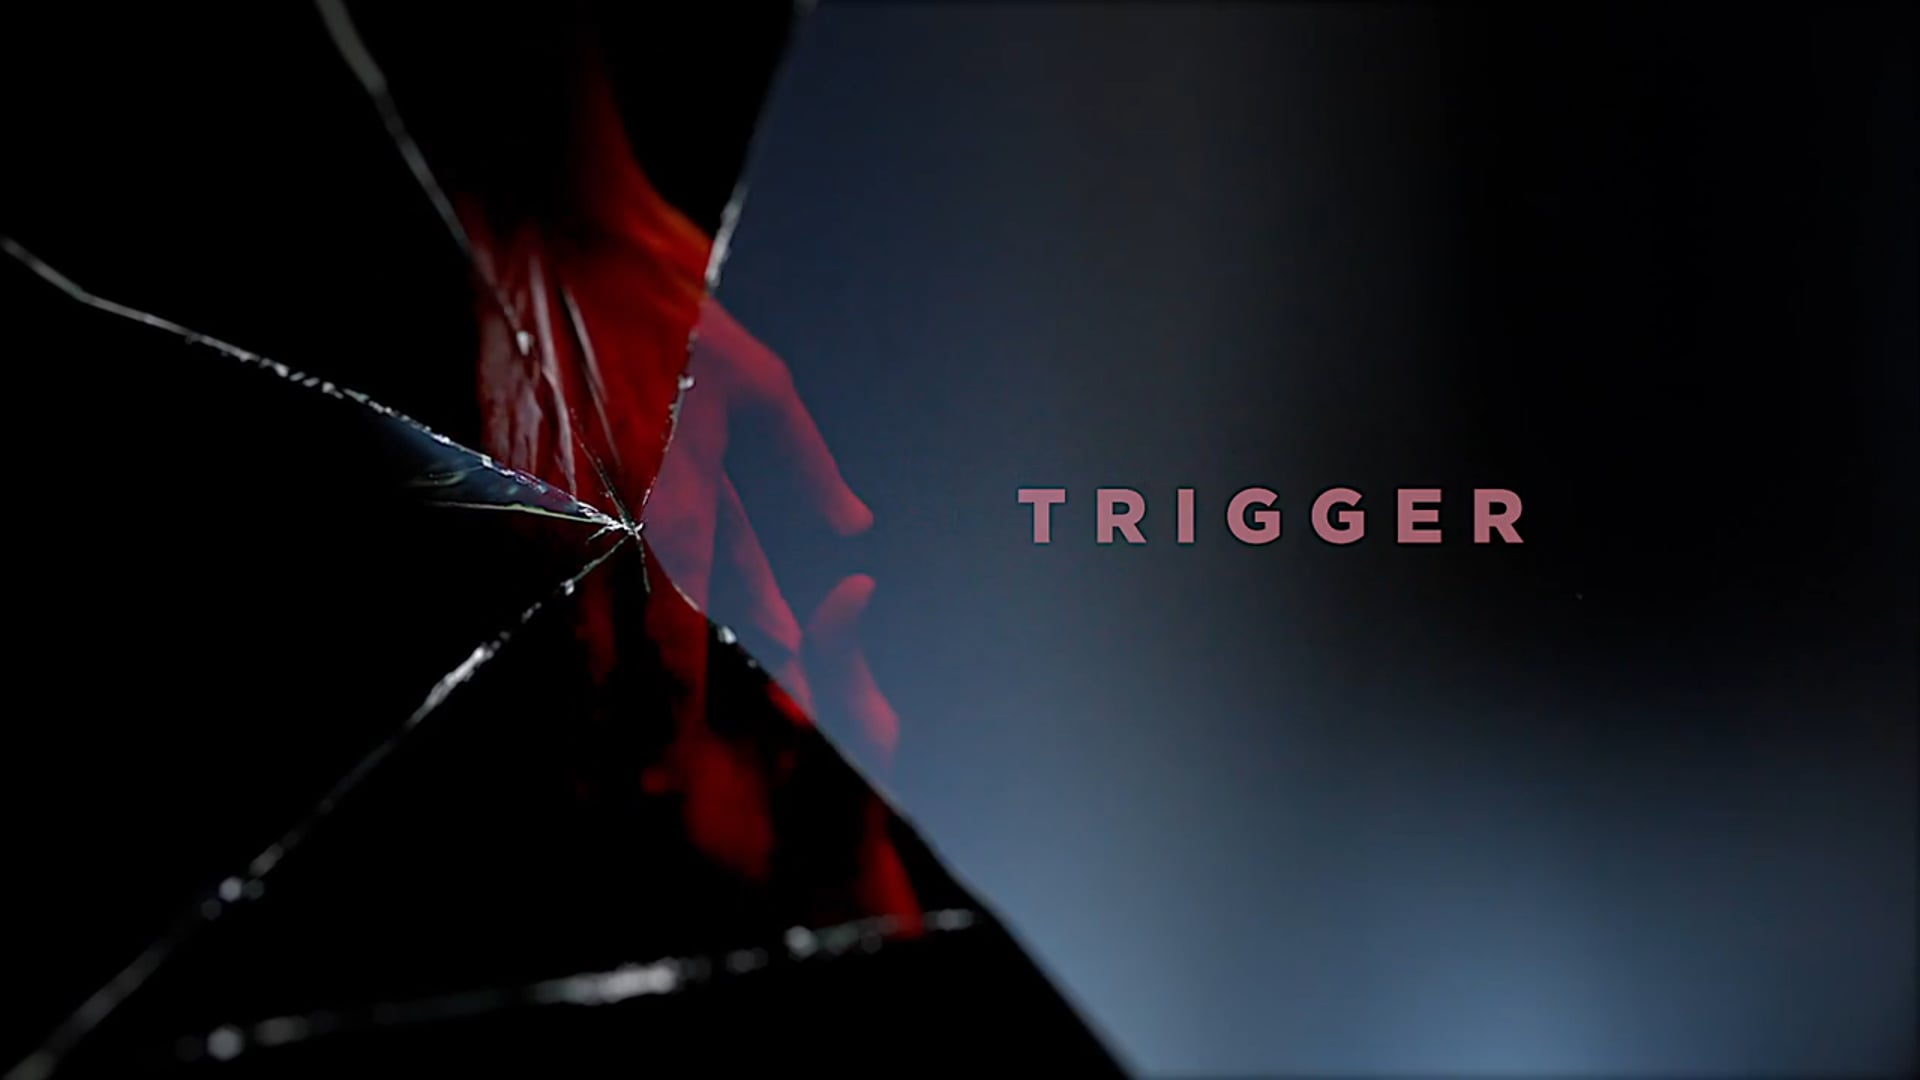 TRIGGER opening titles